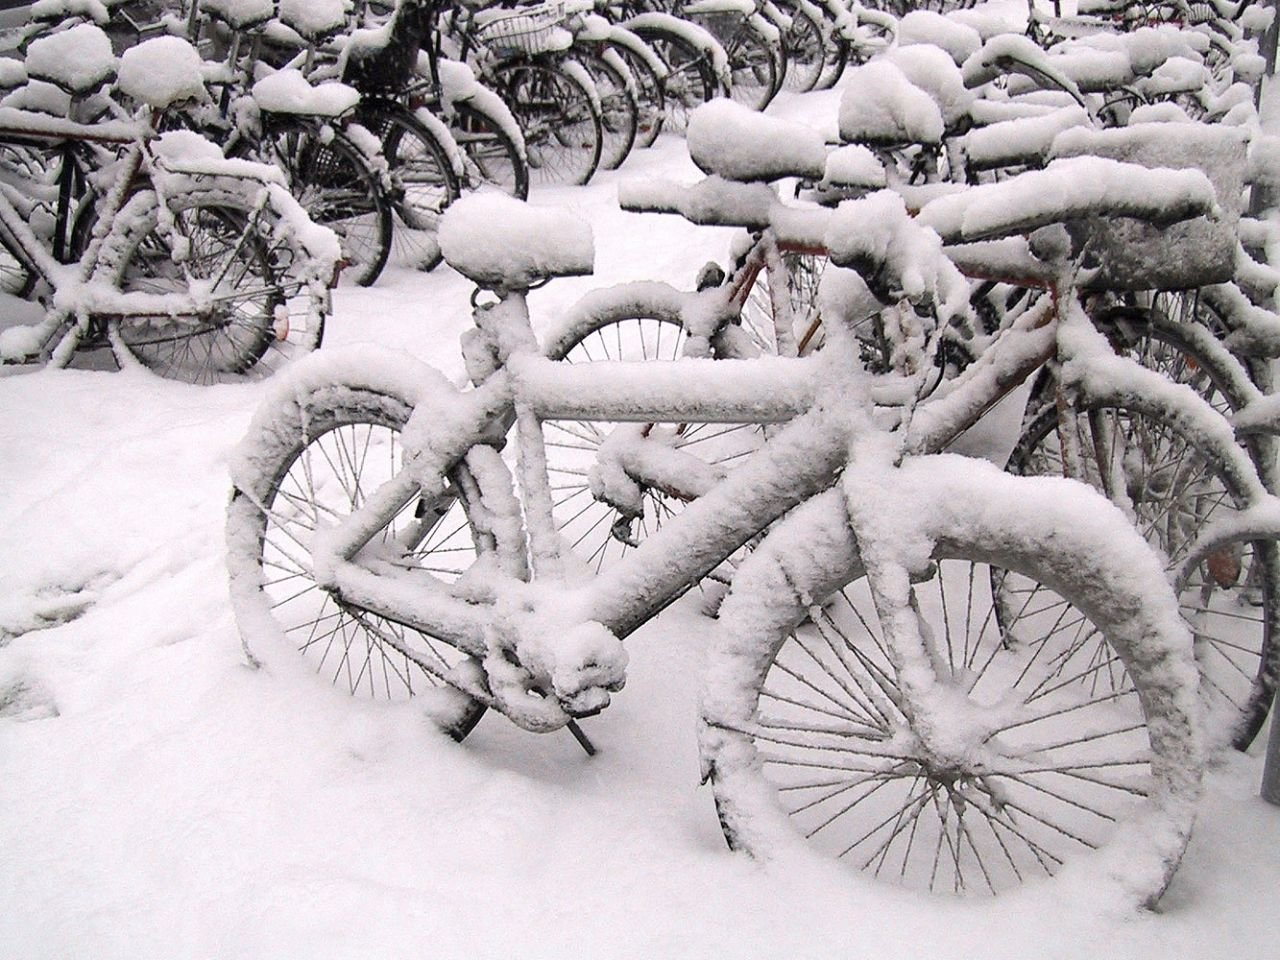 90 percent of Danes own a bicycle.